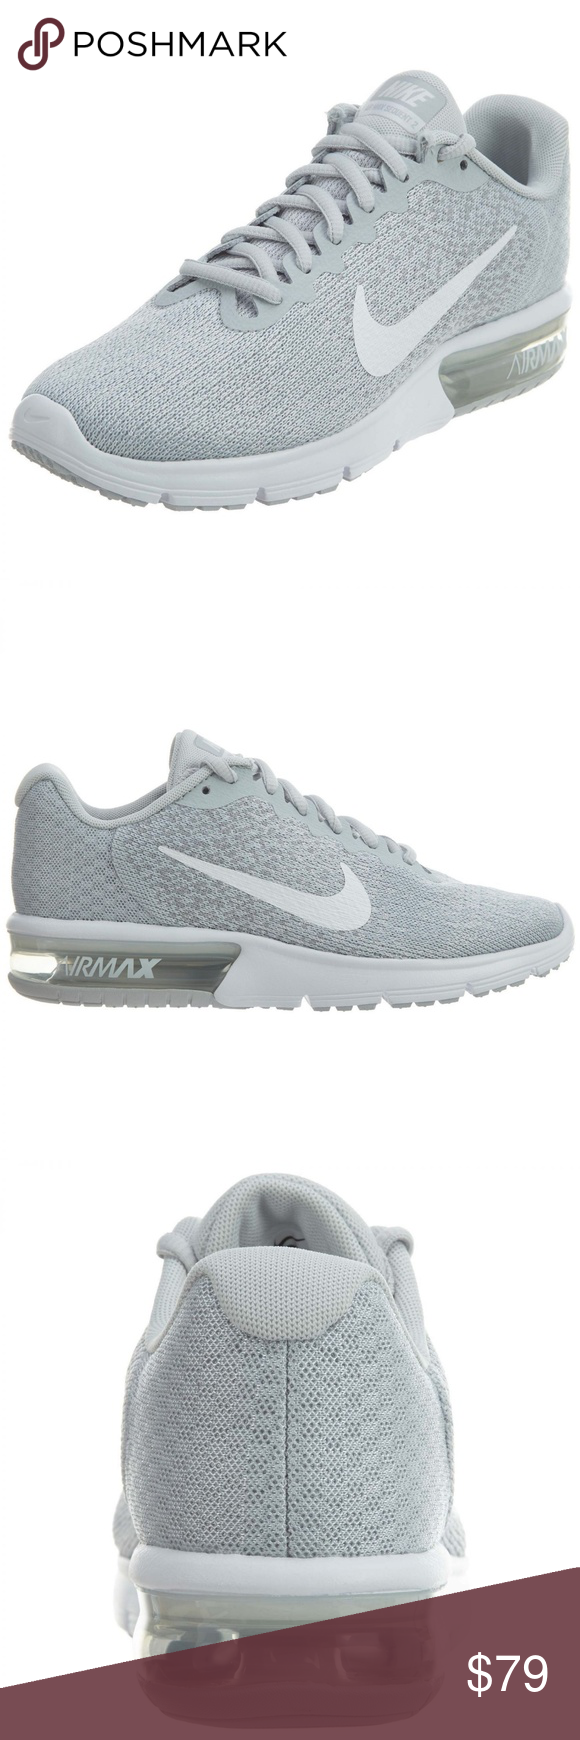 Women's Air Max Sequent 2 Running Shoe in 2020 | Baby boots